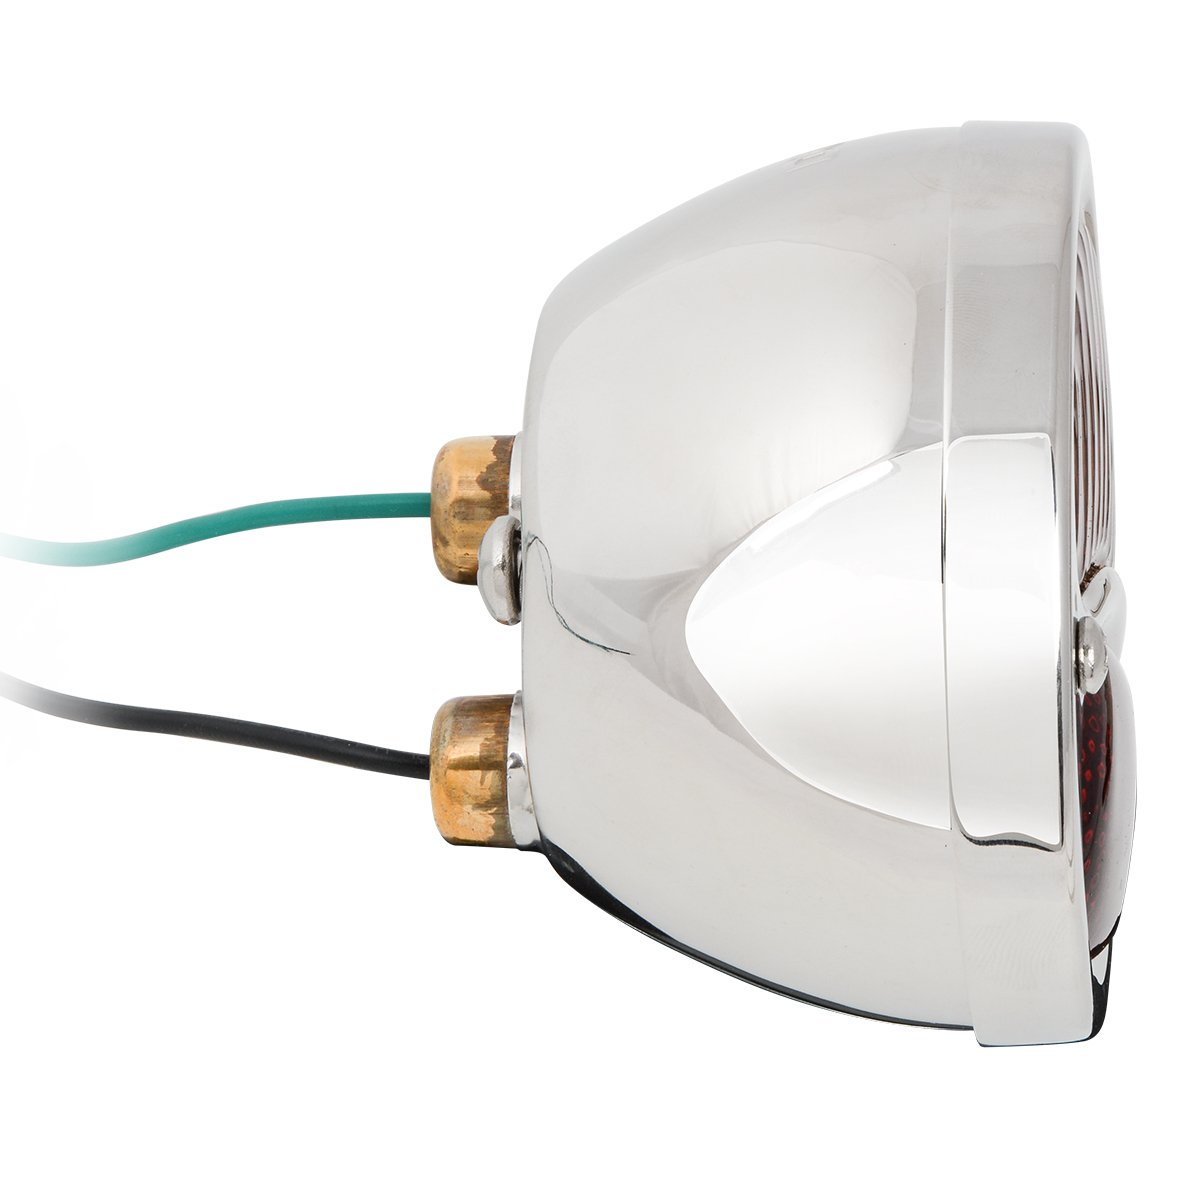 KNS Accessories KA0031 6V Stainless Steel Duolamp Tail Light for Ford Model A with AmberSTOP Script on Red Glass Lens